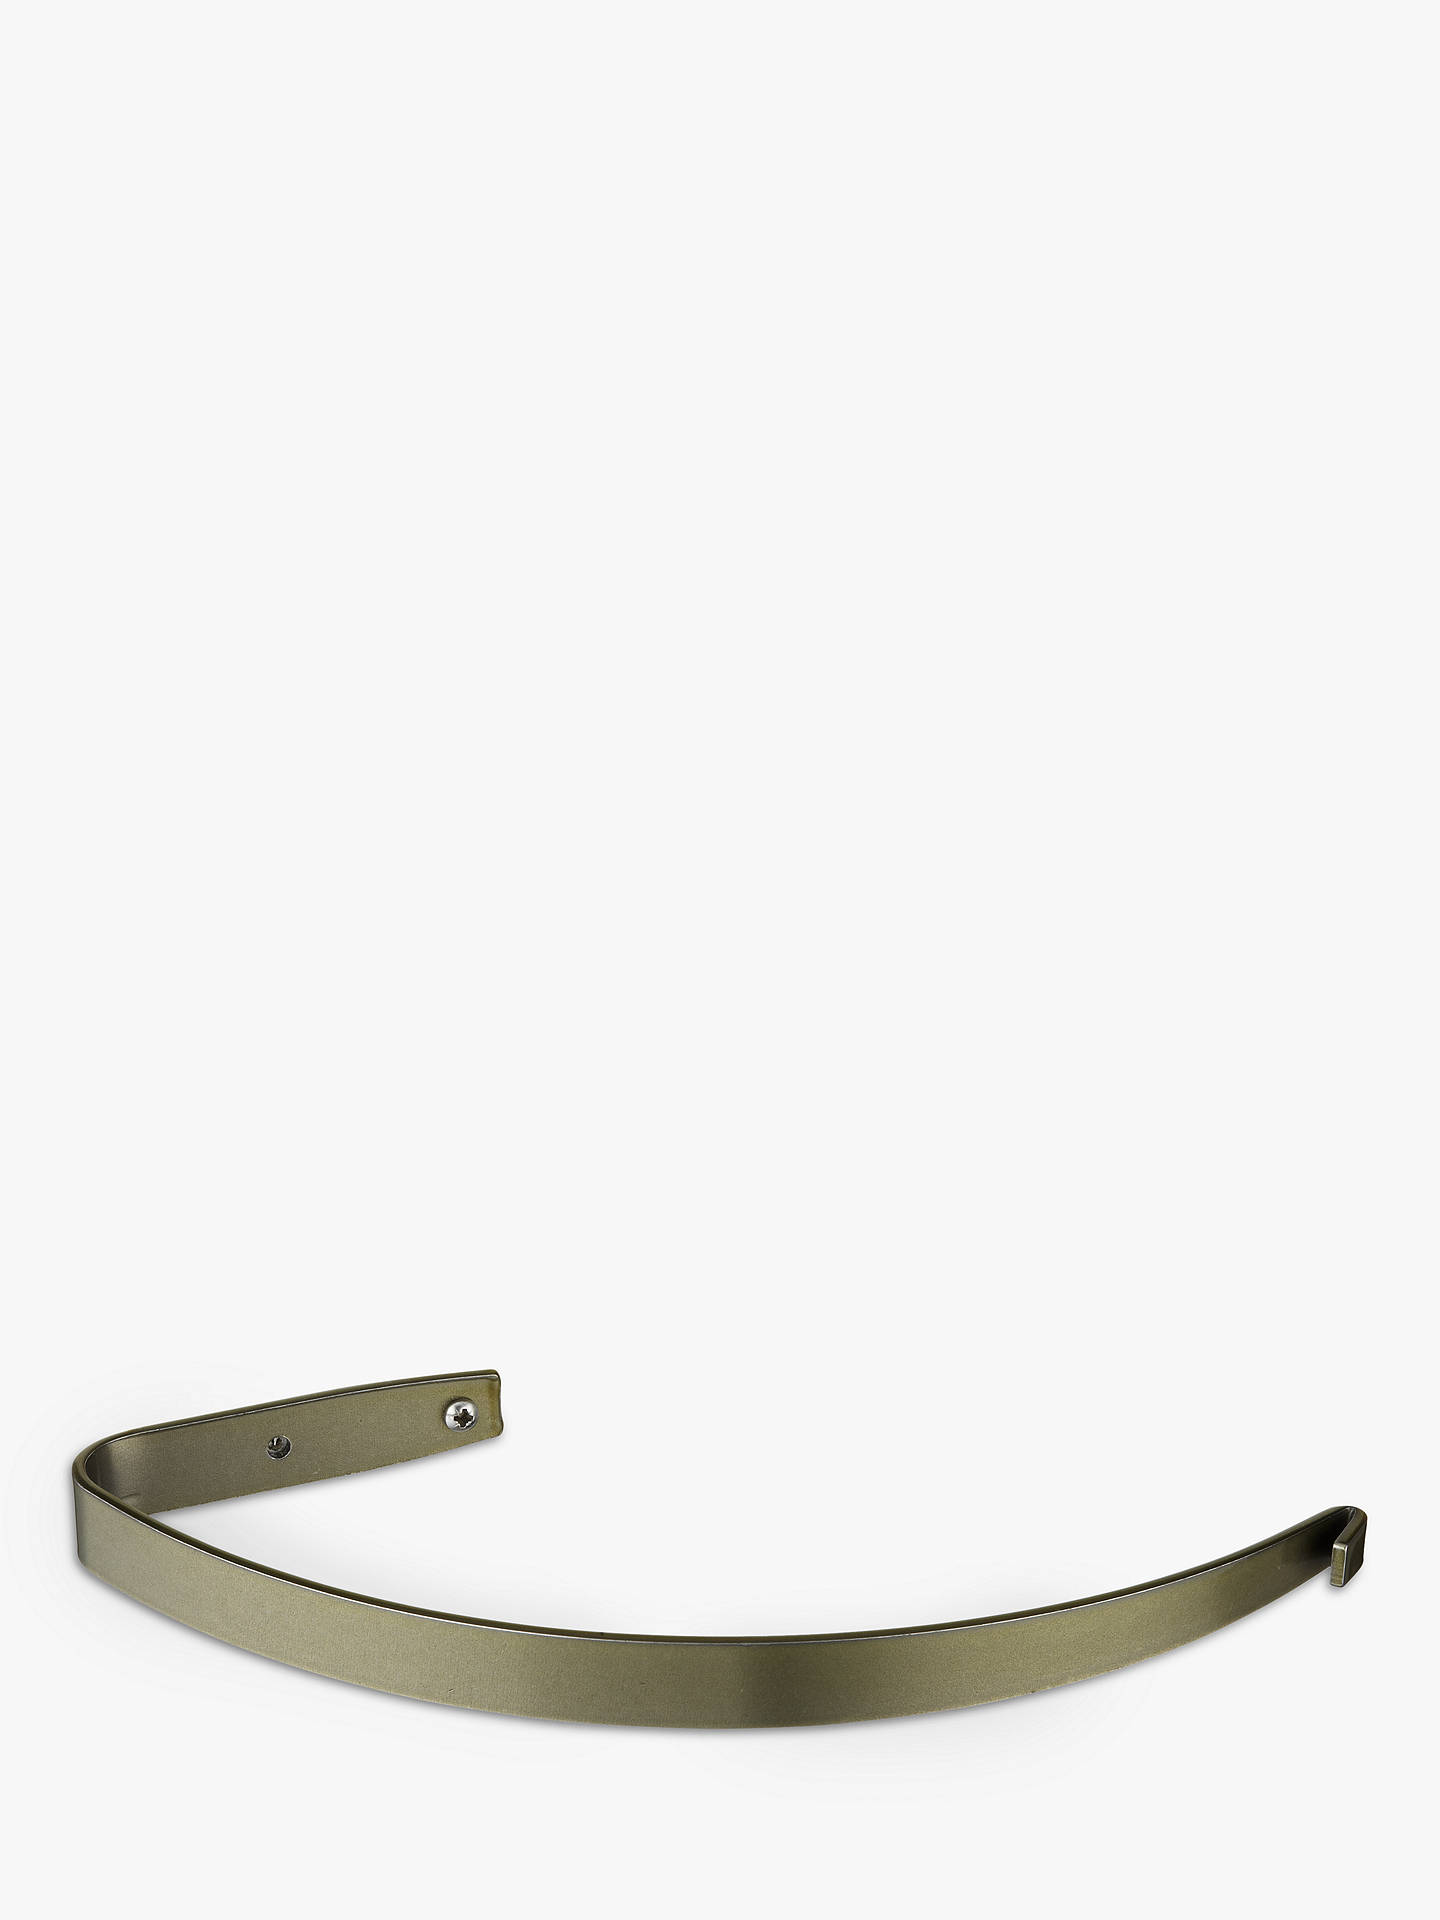 Buy John Lewis & Partners Single Holdback, Brass Toned Steel Online at johnlewis.com